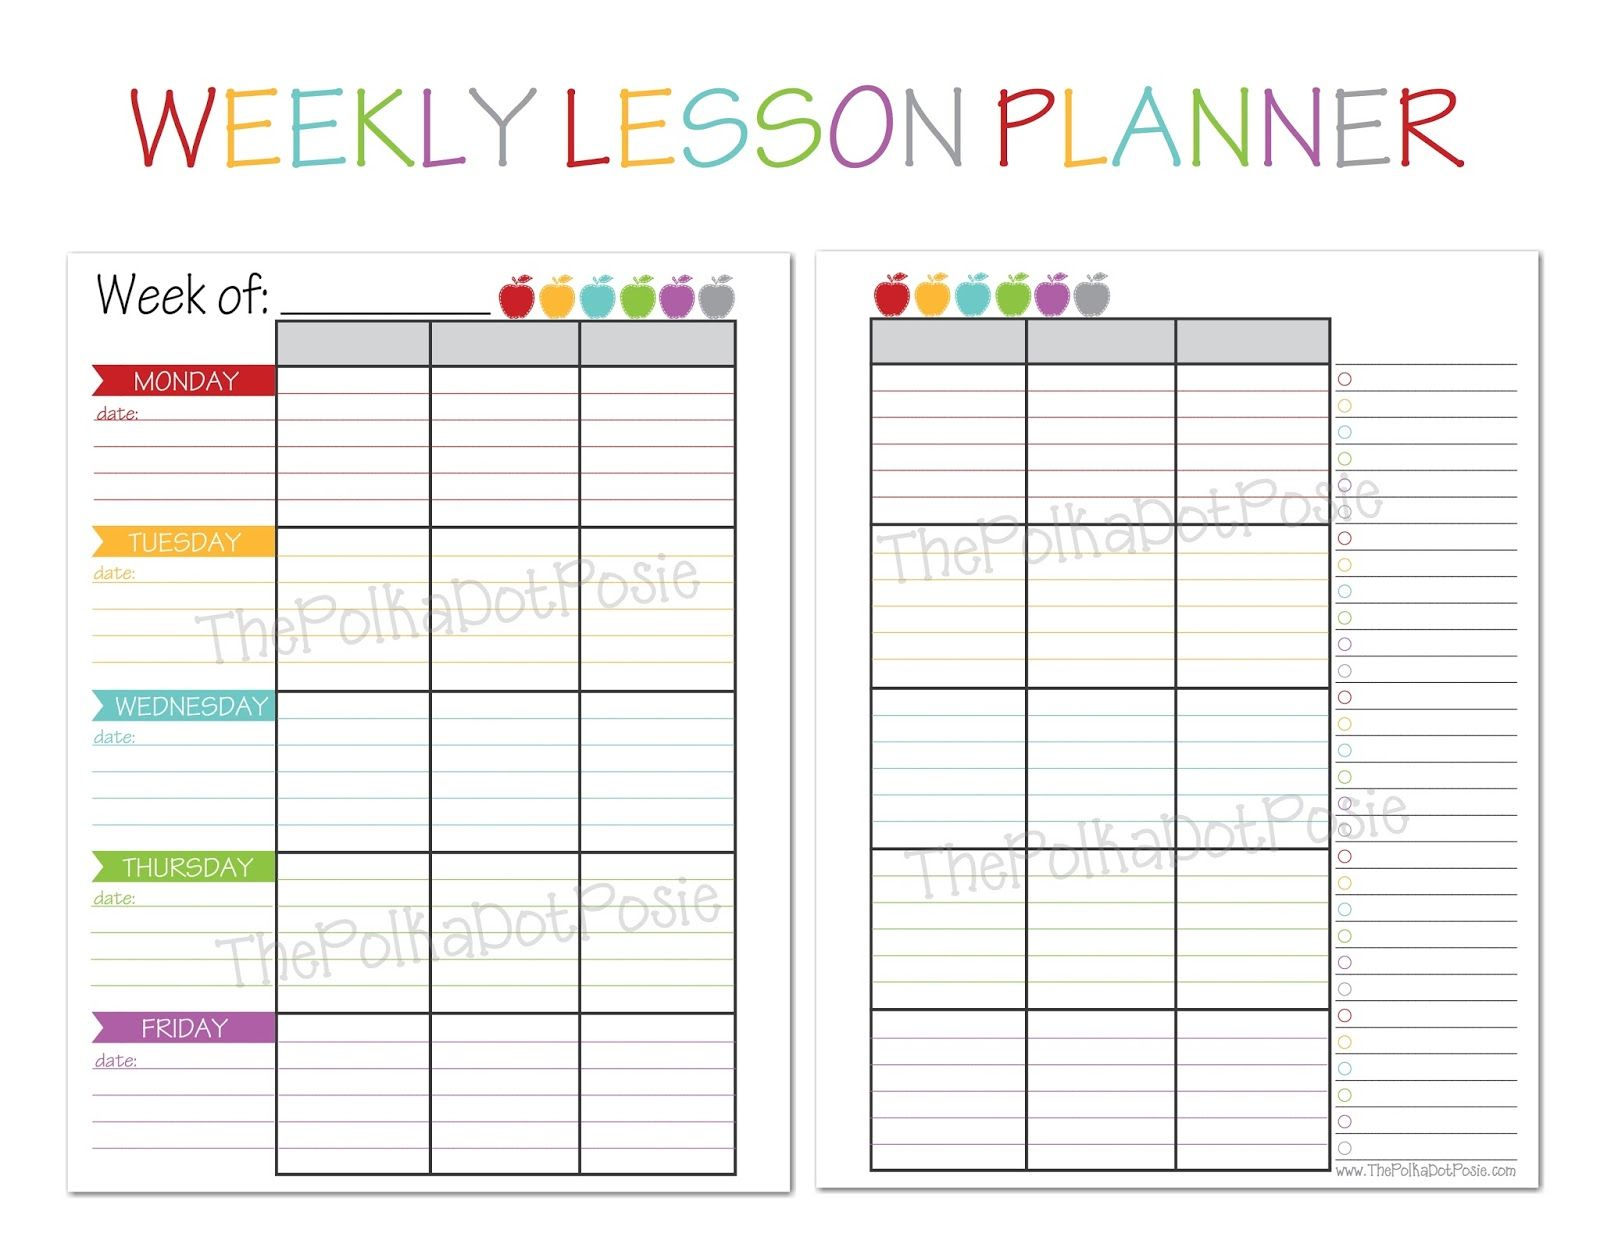 Daily Planner Schedule Worksheet